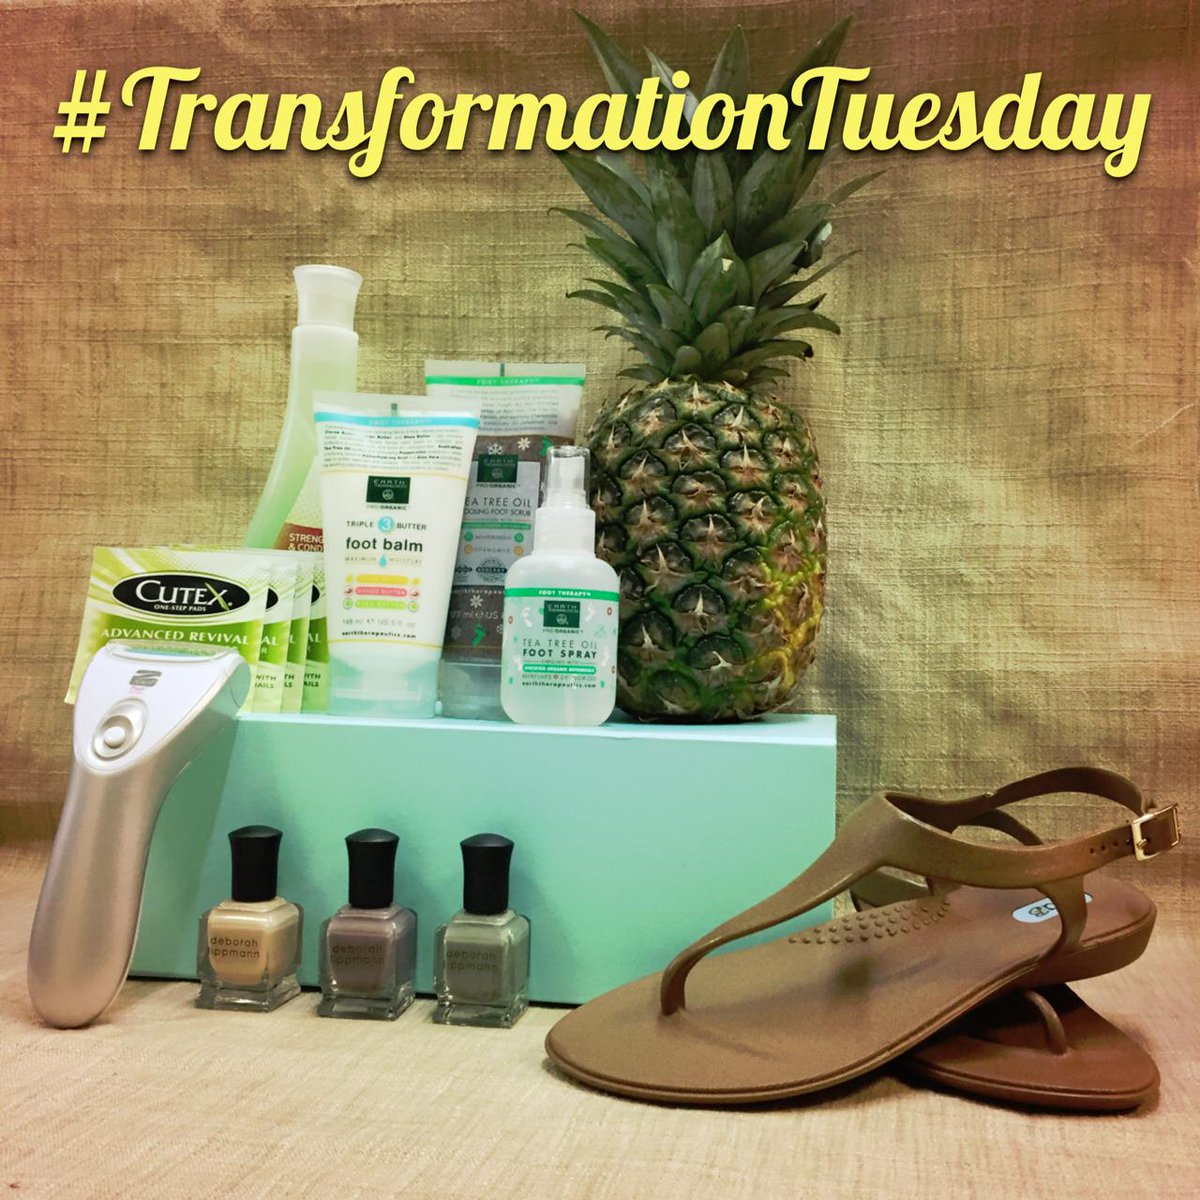 It's #TransformationTuesday! Get ready for sandal weather w/this #giveaway- Follow + RT to win http://t.co/wmPnGX2zGl http://t.co/bKEUQrDlEL